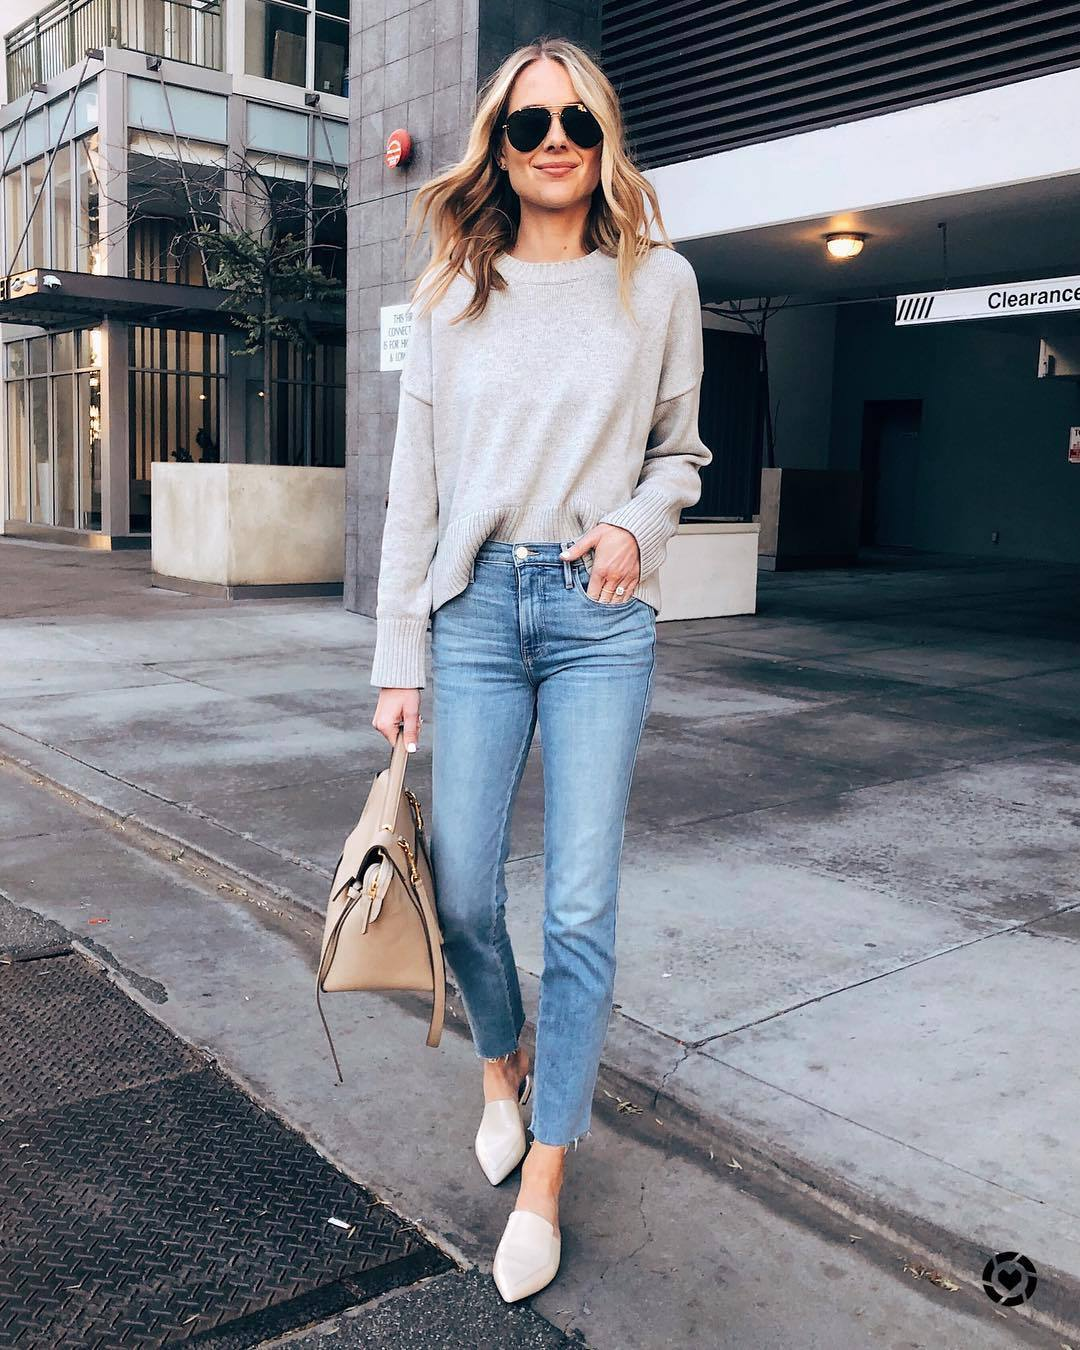 jeans high waisted jeans white shoes mules cropped jeans straight jeans shoulder bag knitted sweater sunglasses